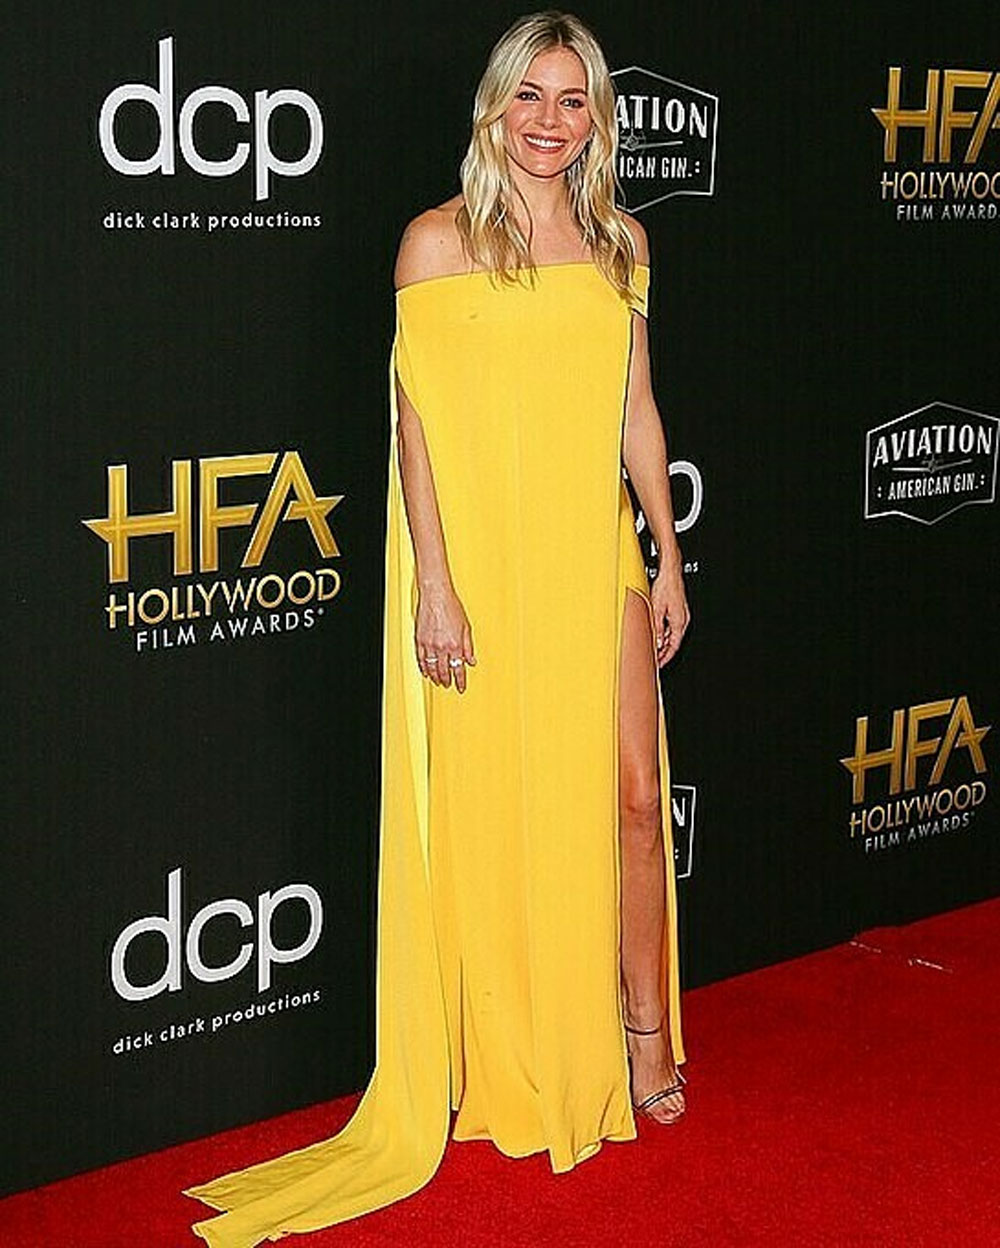 Yellow brilliance, Hollywood star, Cong Tri outfit, British-American star,  Hollywood Film Awards, Sienna Miller, natural good looks